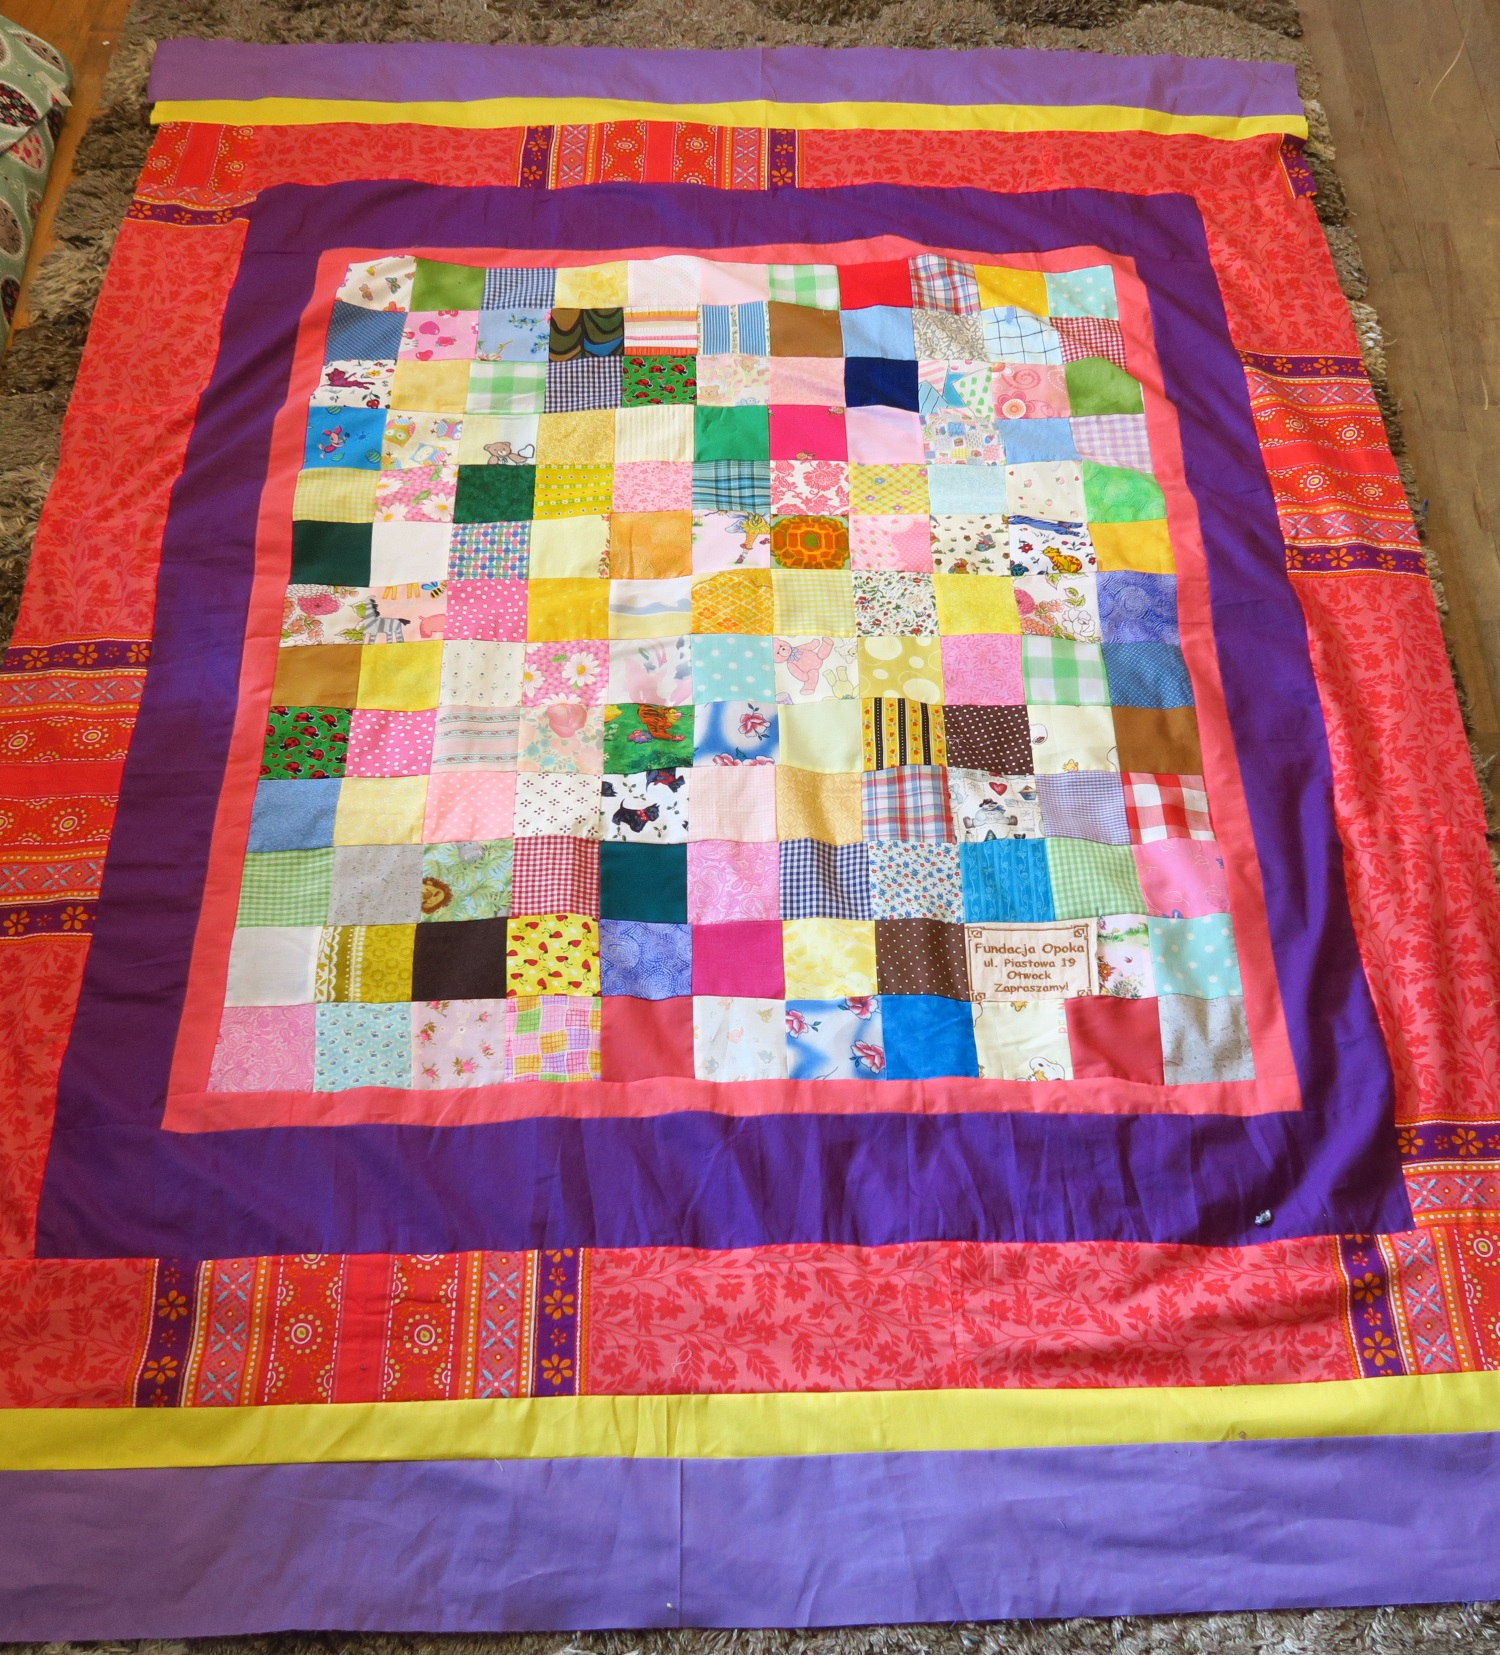 Fran made the center and I added the borders.